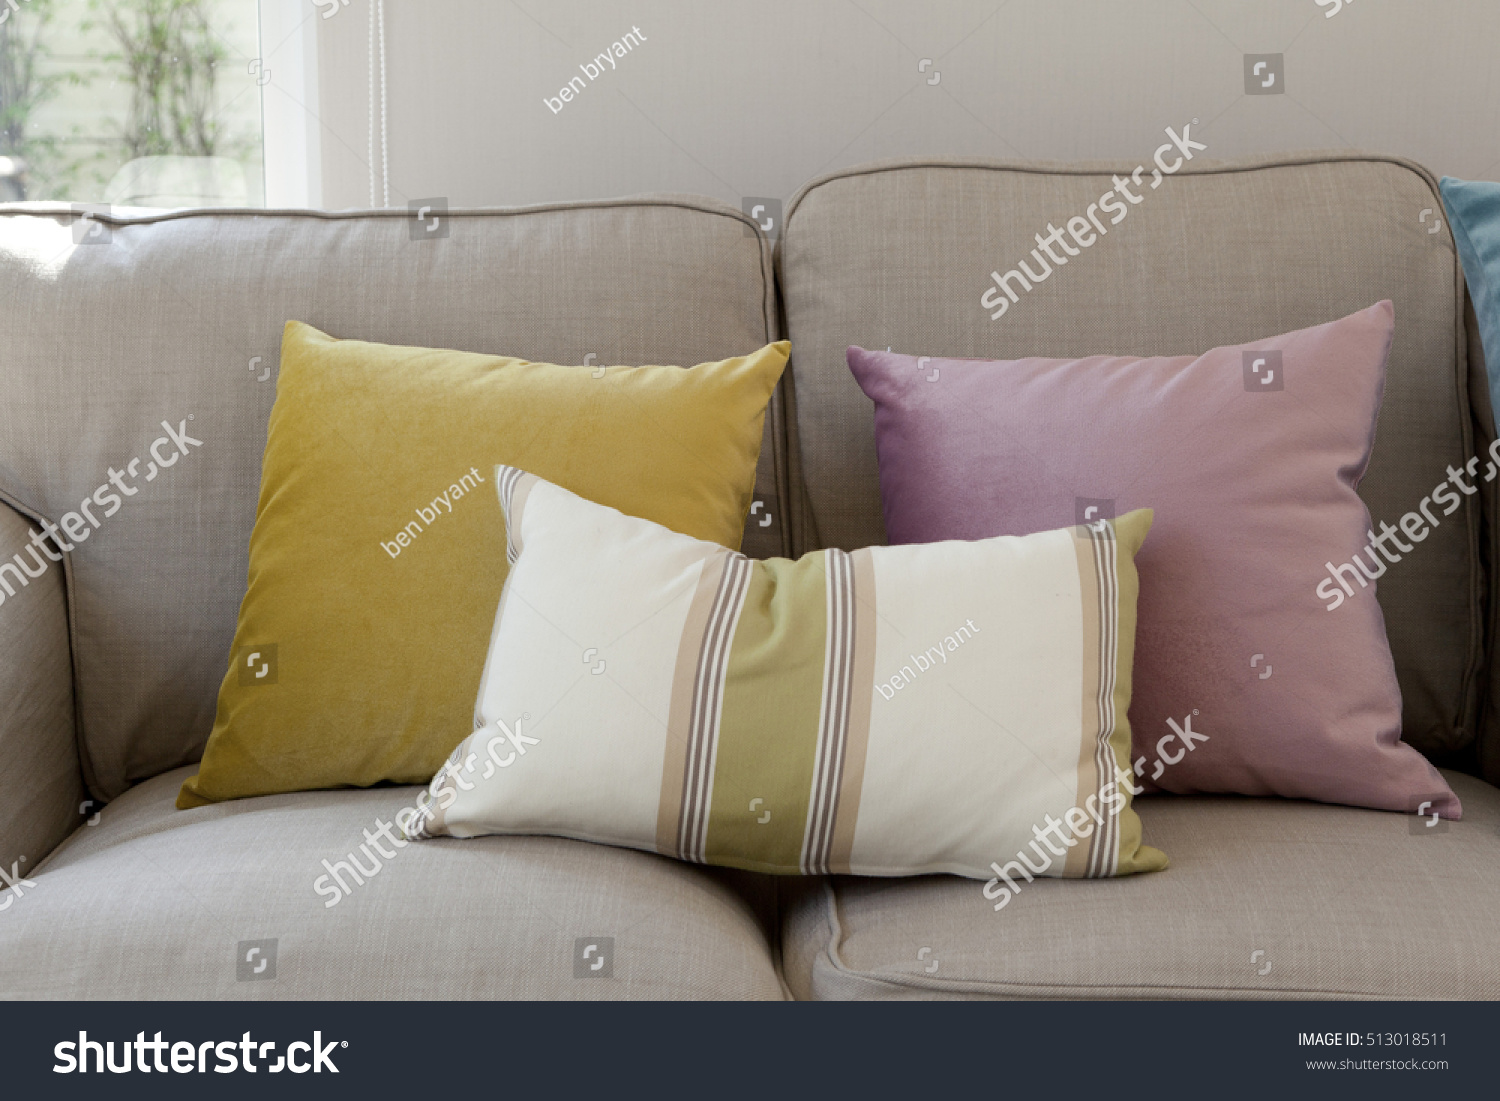 bright colored sofa pillows sofas and sectionals cheap colorful on couch stock photo 513018511 shutterstock